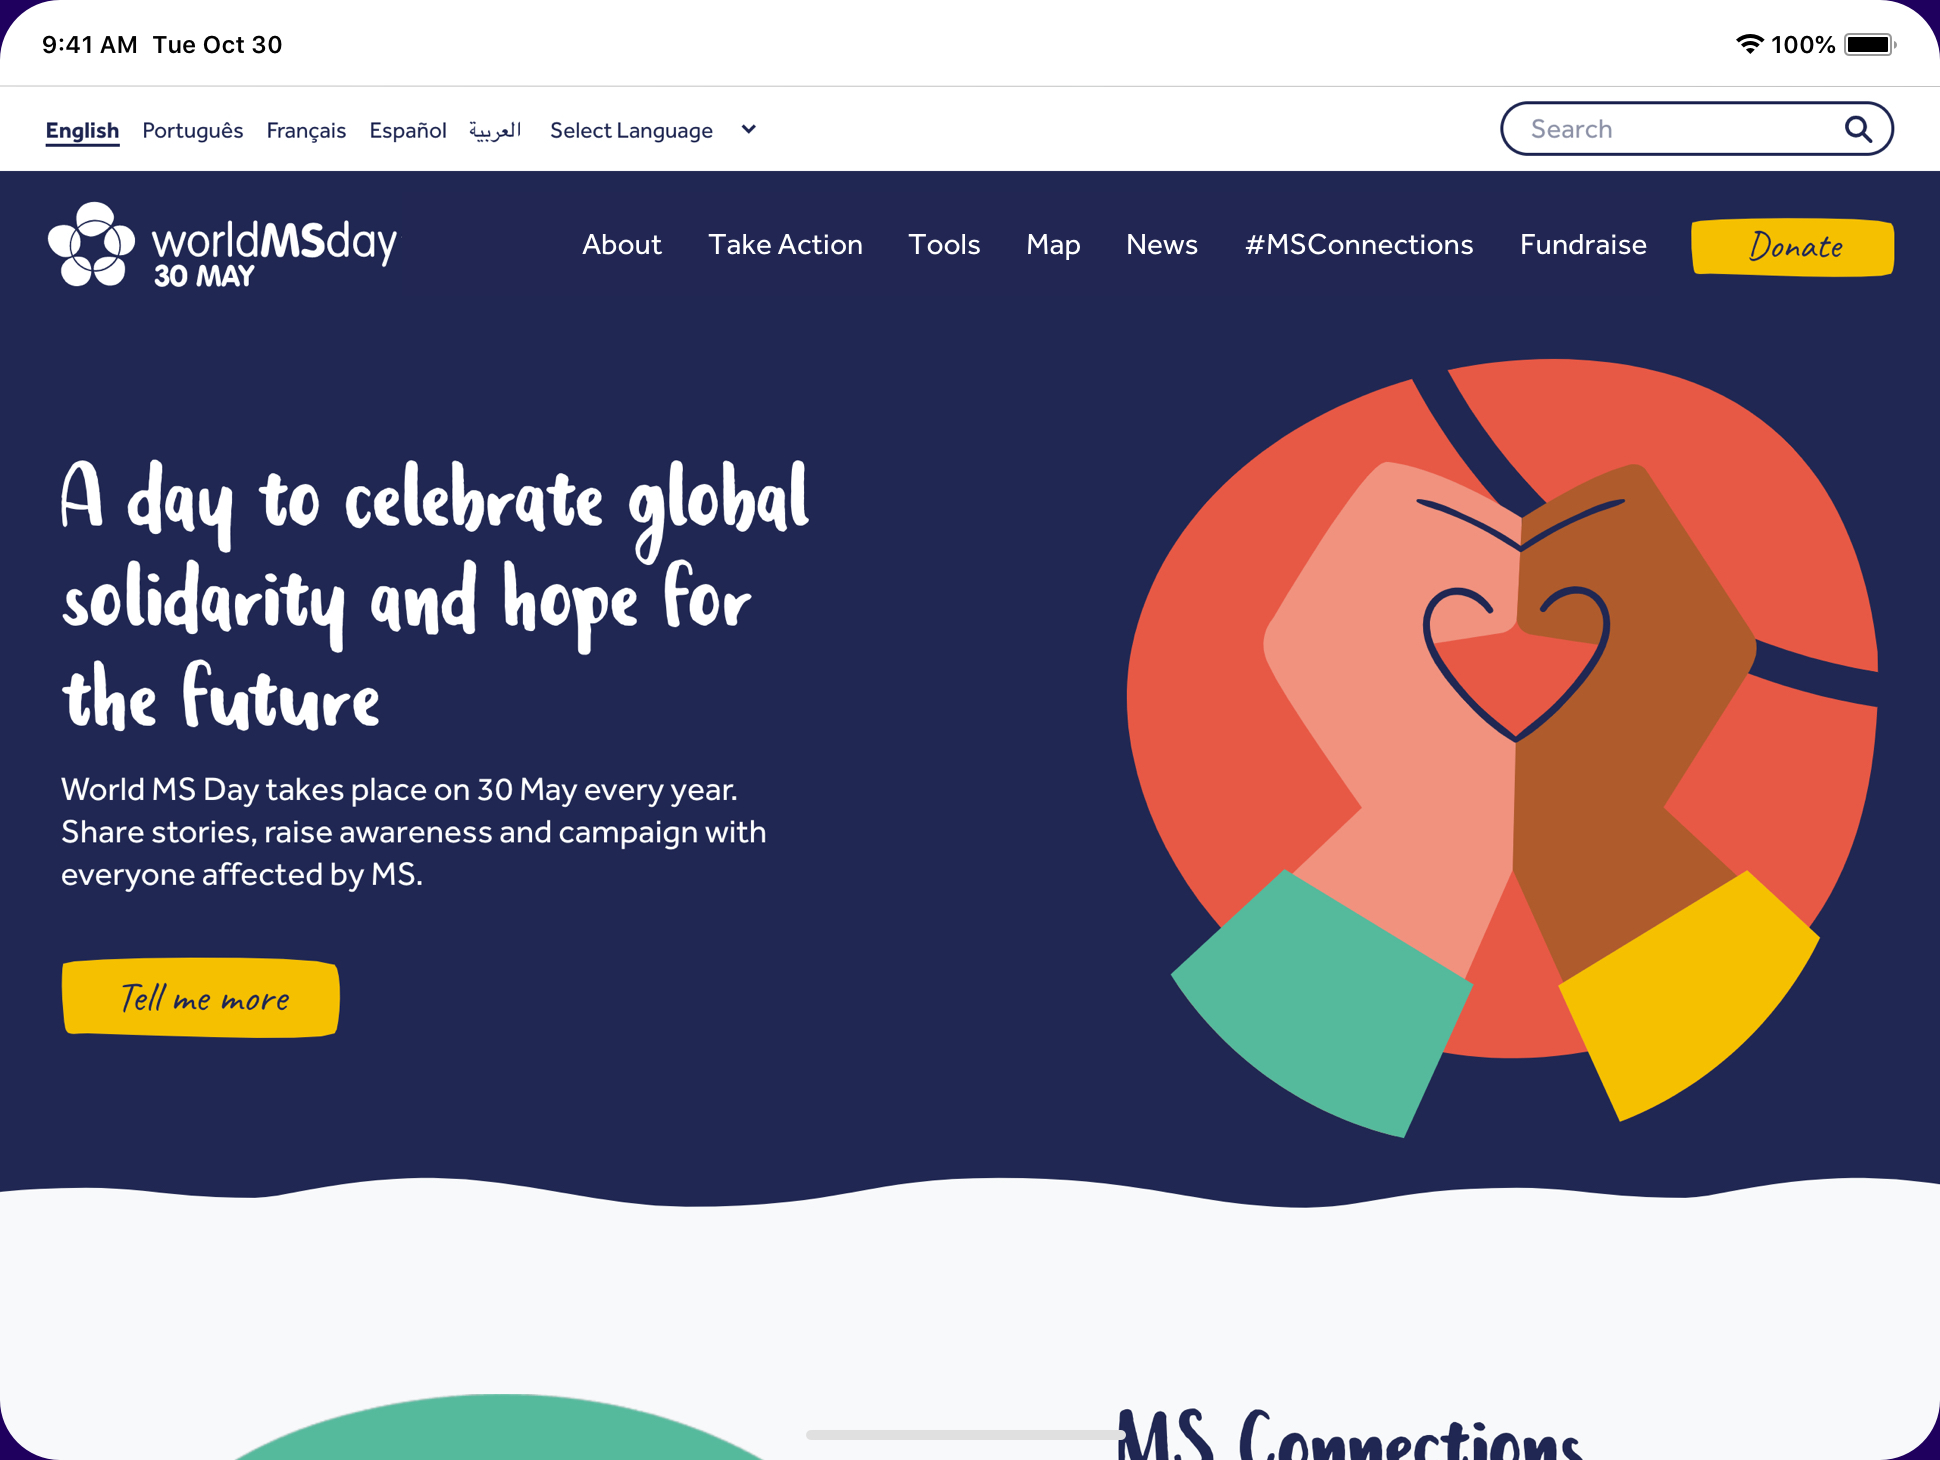 Image of homepage of Word MS Day website